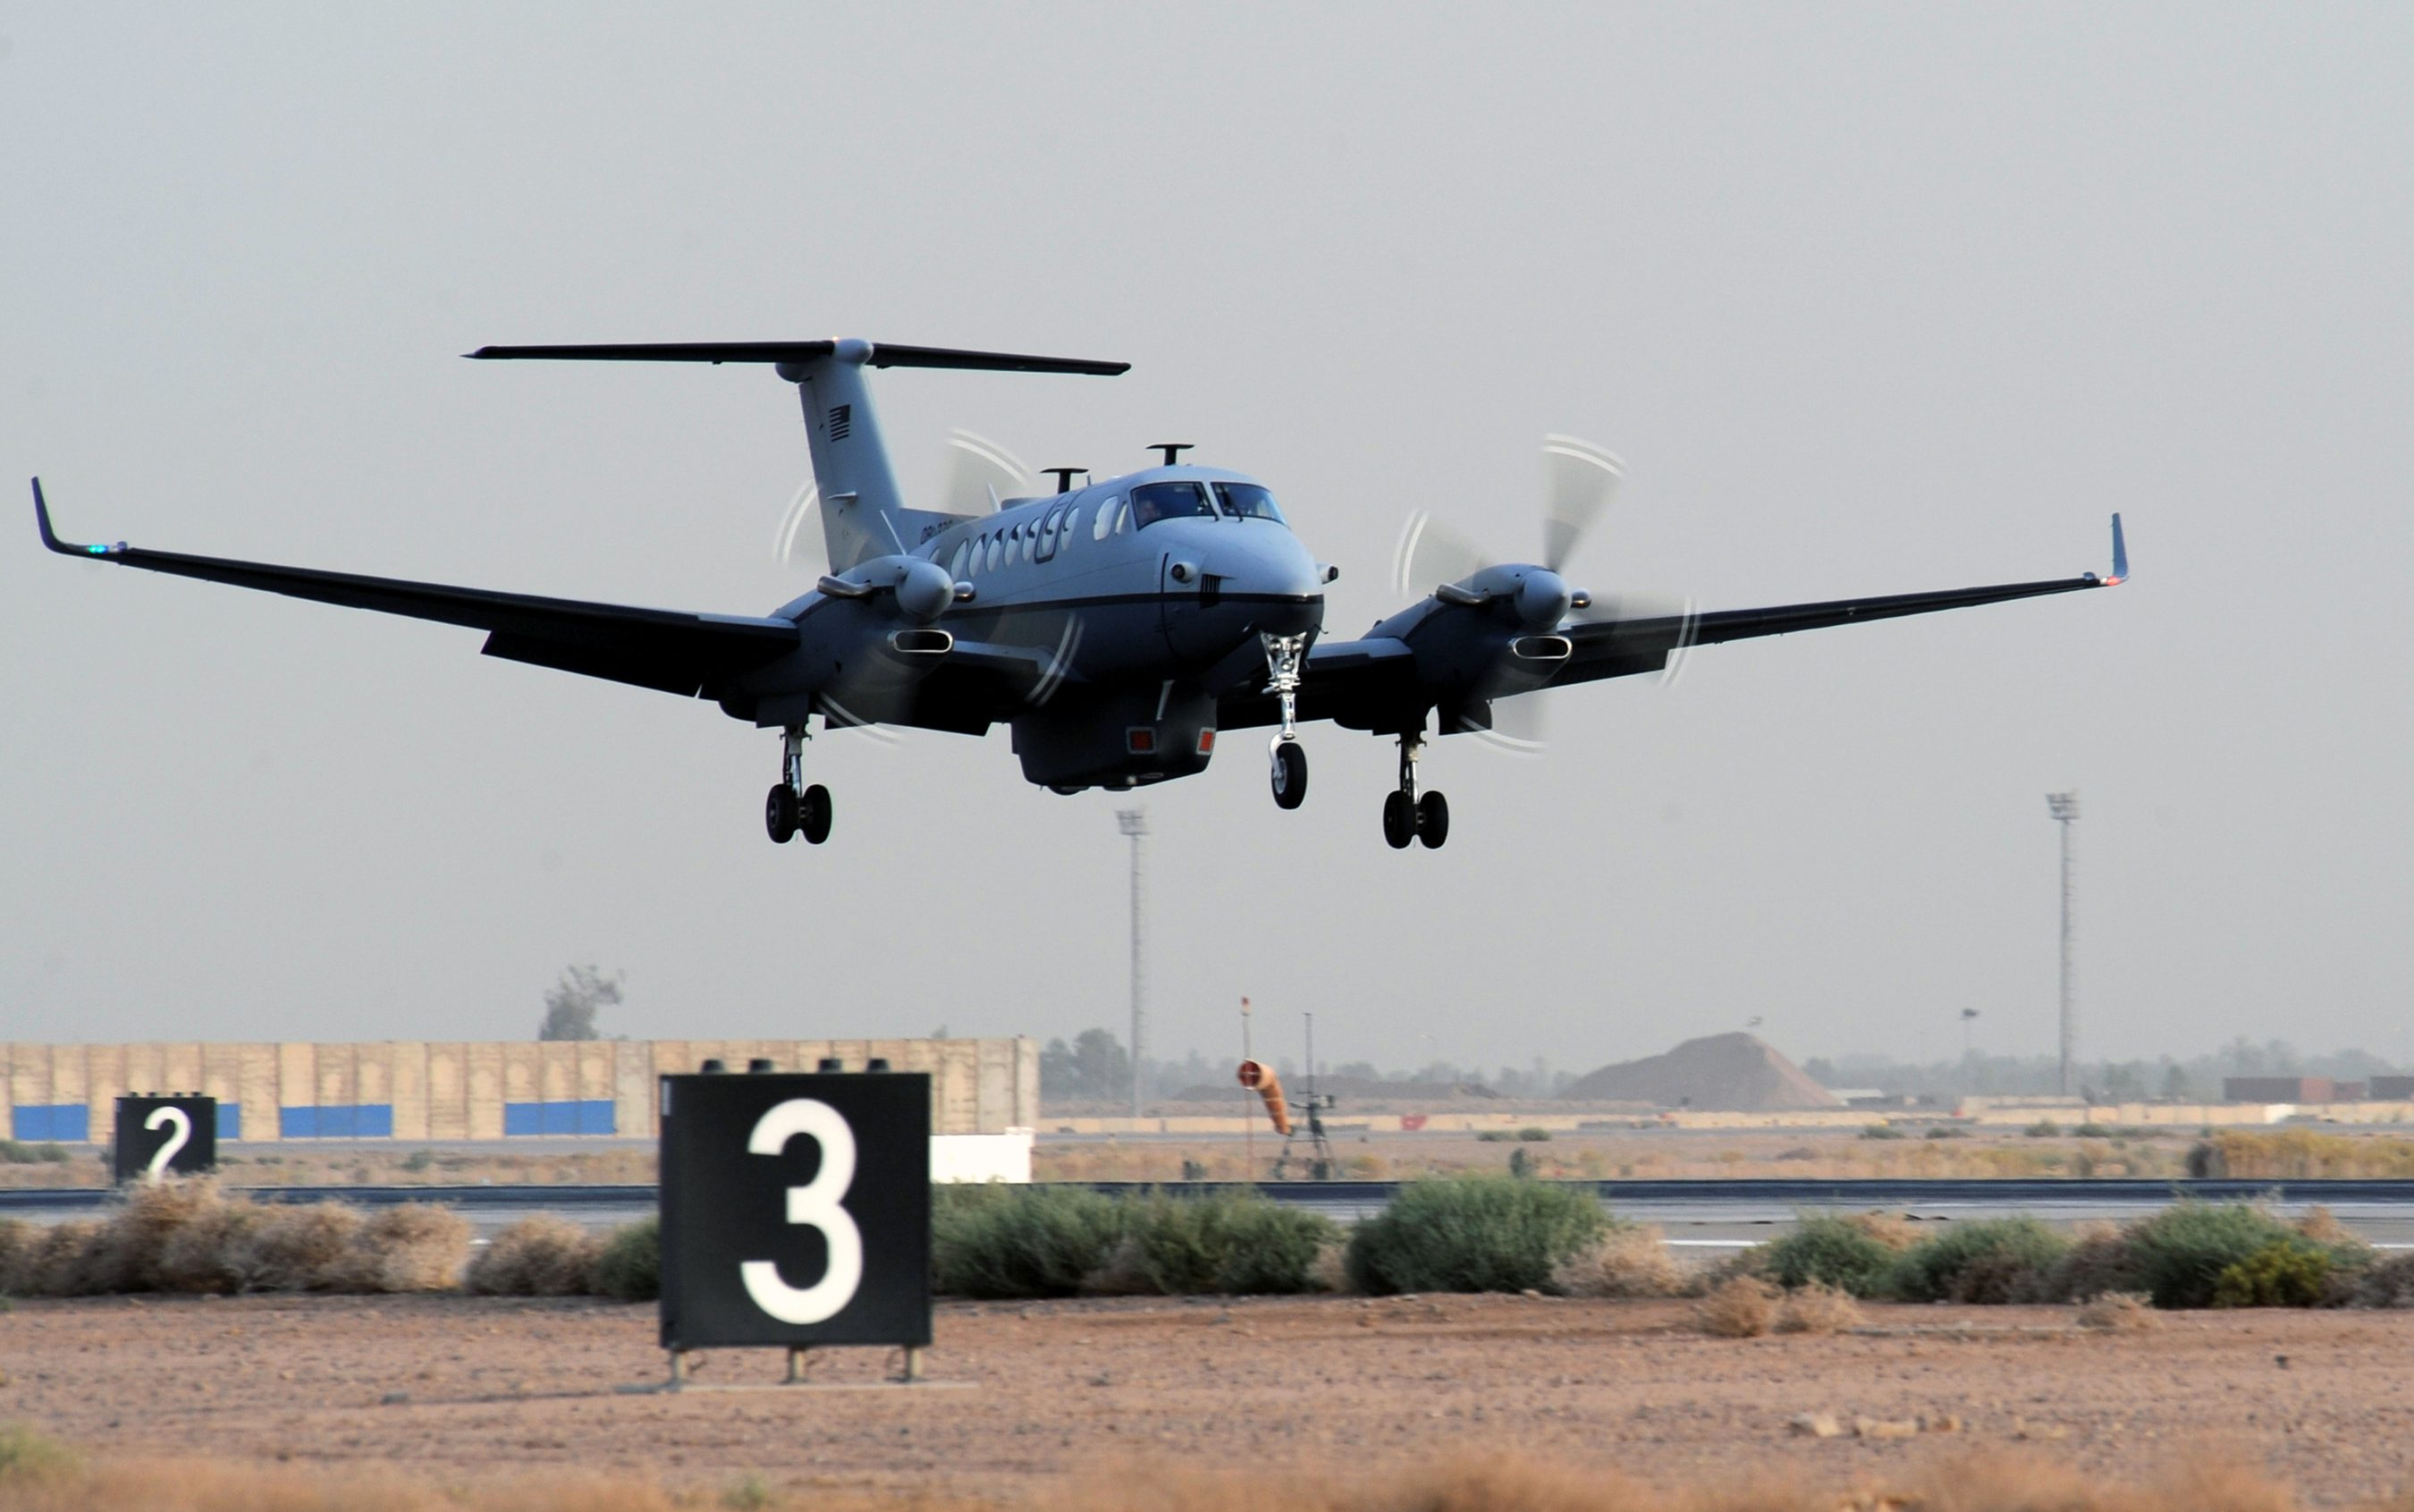 The MC-12 Liberty aircraft is the Air Force's newest intelligence, surveillance and reconnaissance platform. It is a medium-altitude manned special-mission turbo prop aircraft that supports coalition and joint ground forces. (U.S. Air Force photo/Senior Airman Tiffany Trojca)